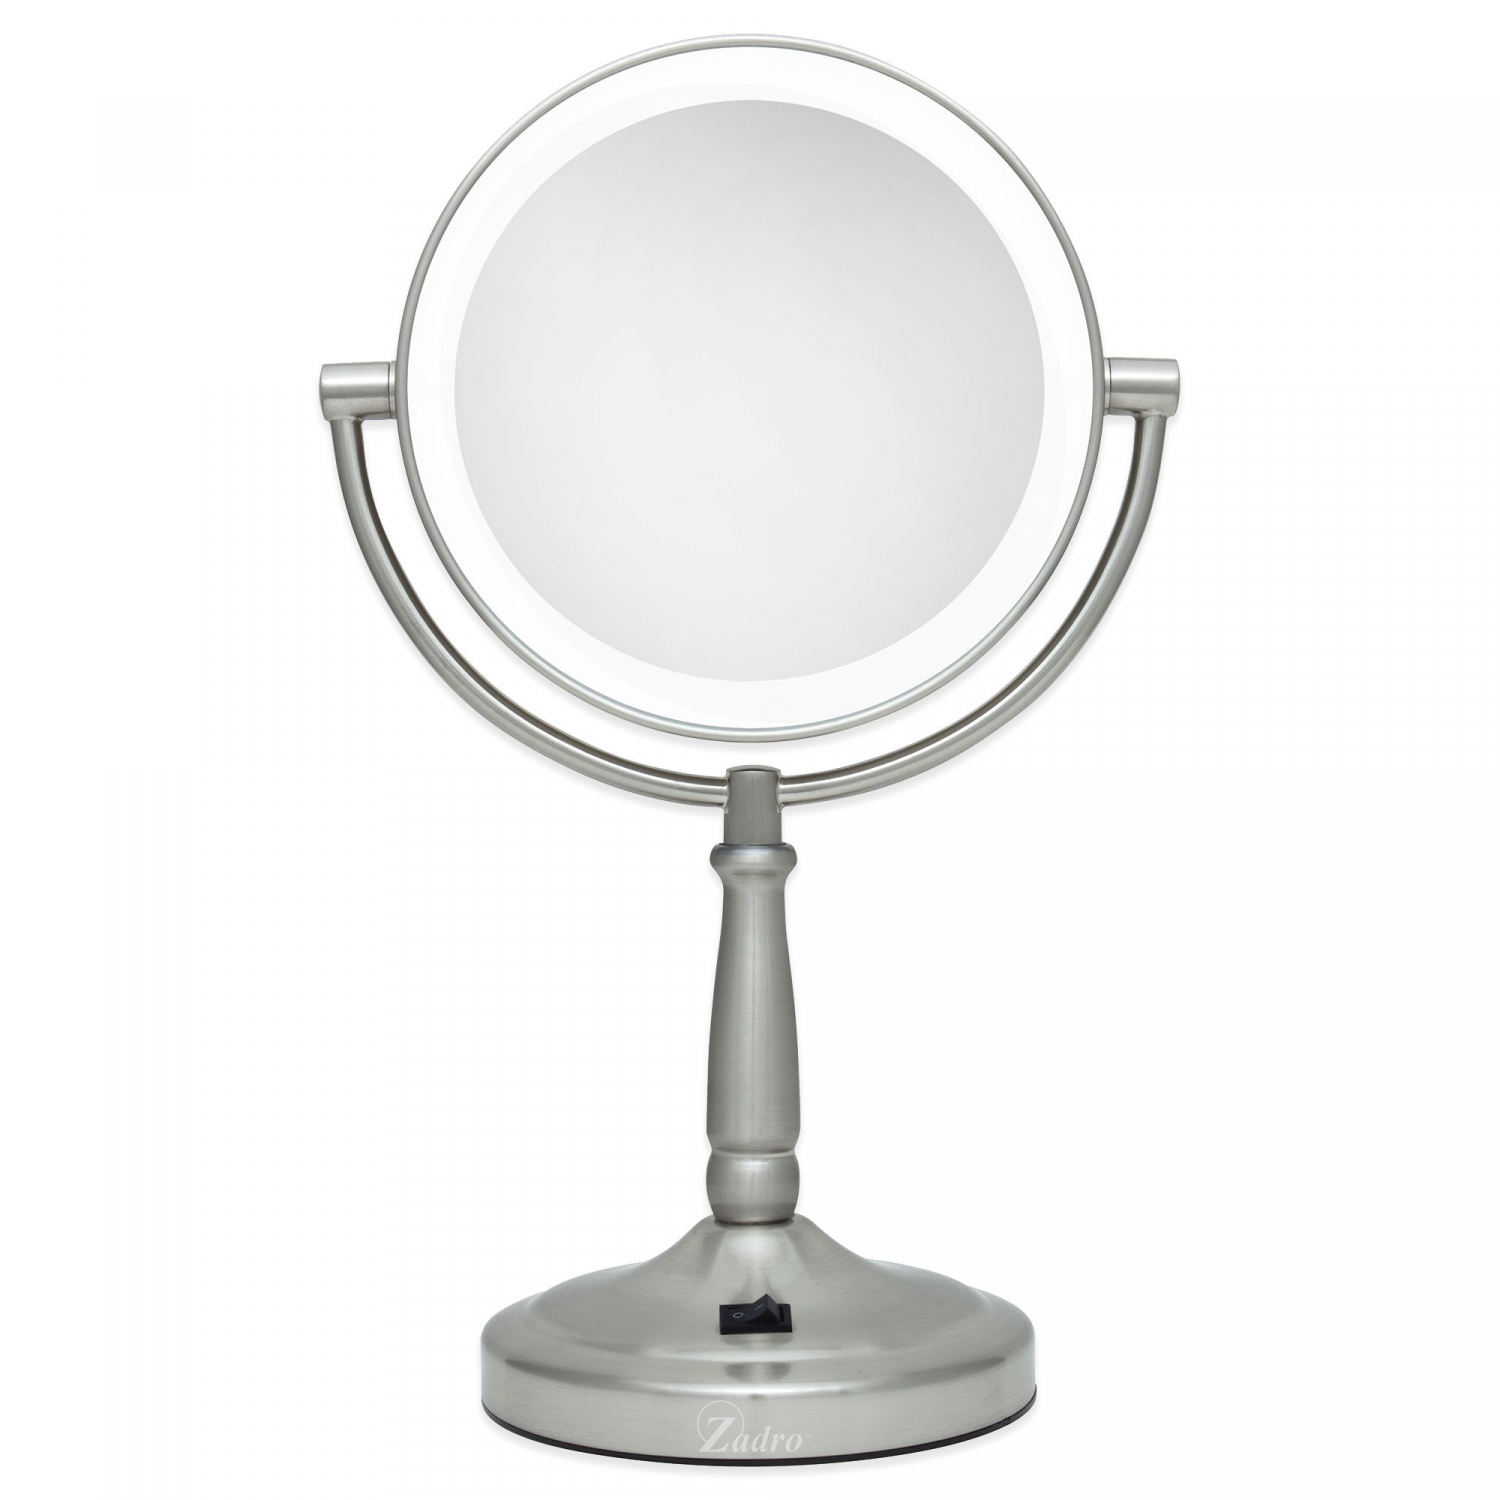 Zadro Lighted Makeup Mirror.Details About Zadro 10x 1x Cordless Led Lighted Vanity Mirror